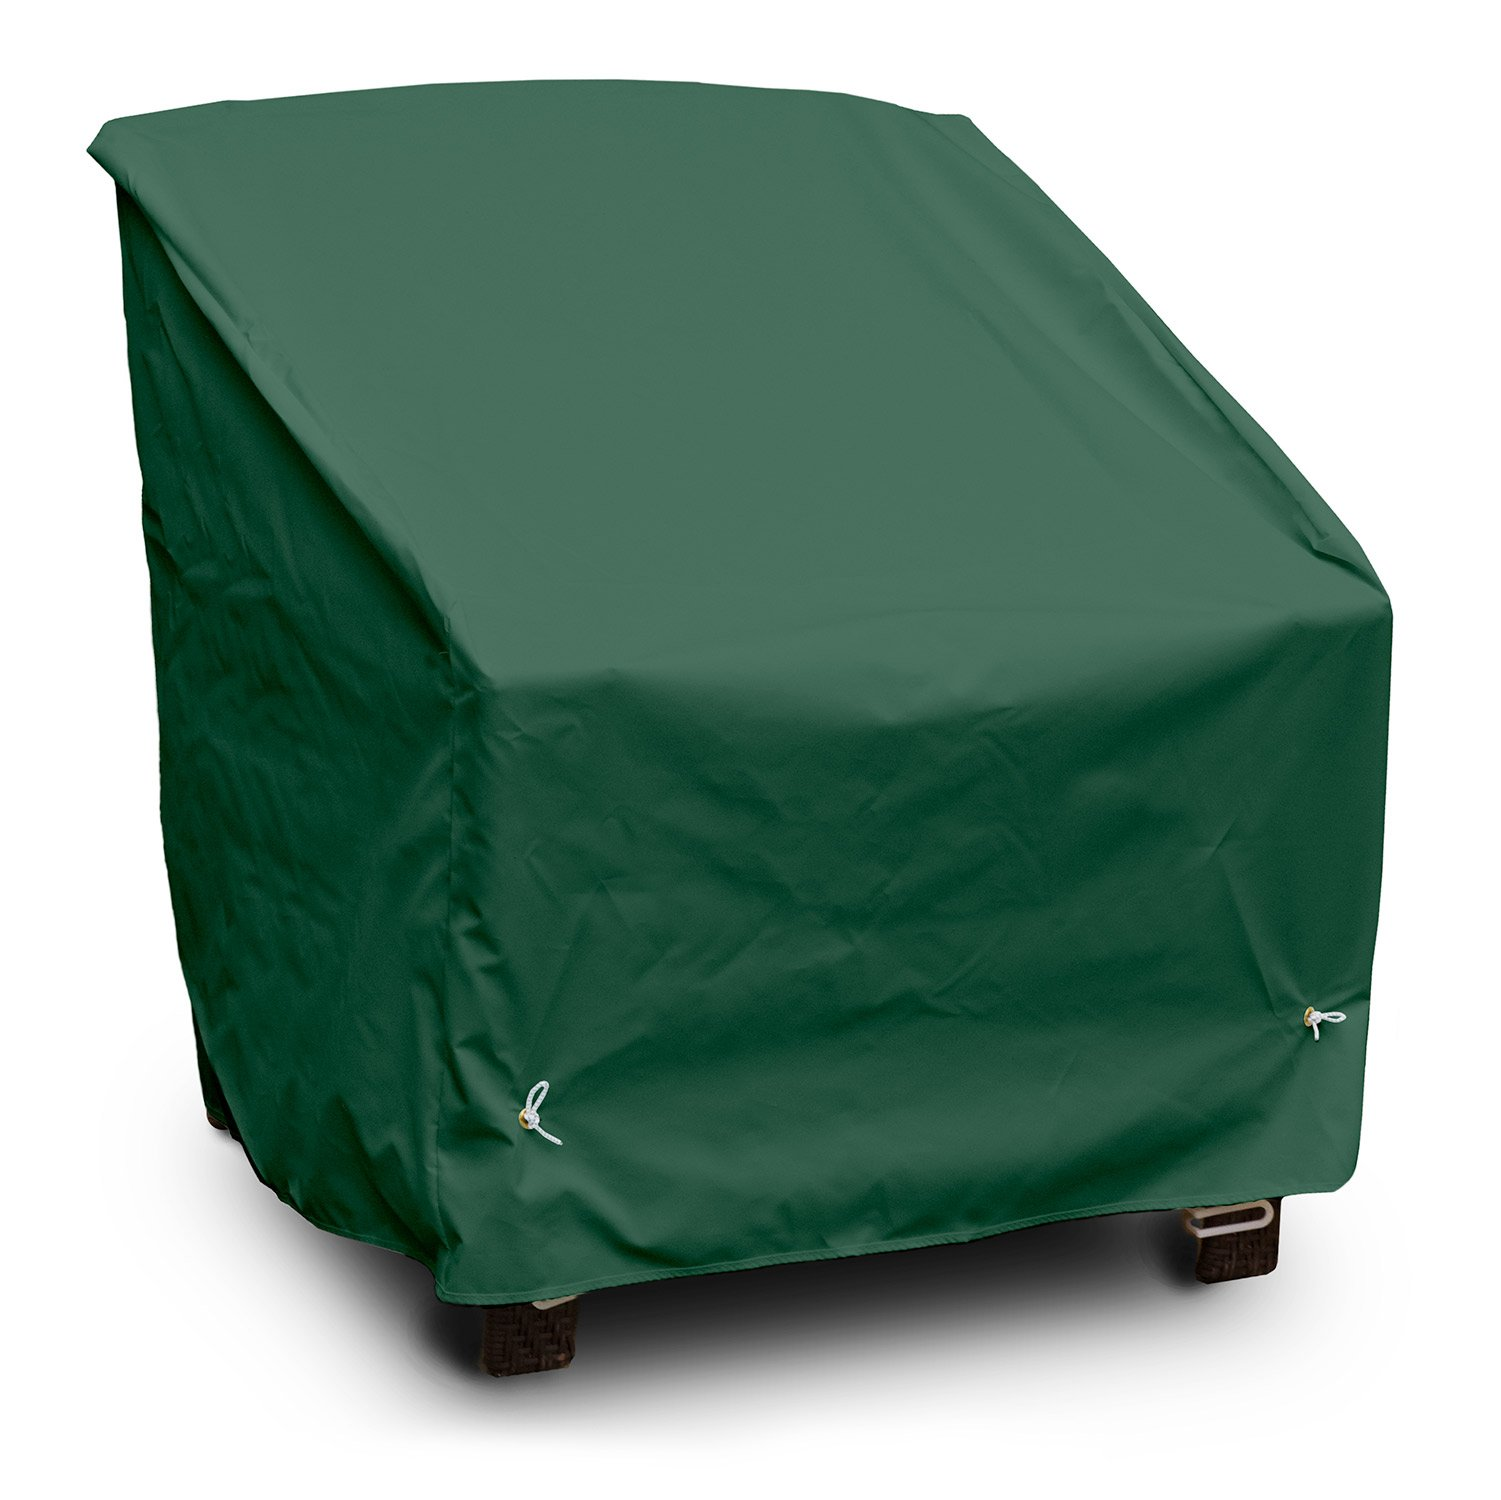 KoverRoos Weathermax 66150 Deep Seating Chair Cover, 34-Inch Width by 35-Inch Diameter by 32-Inch Height, Forest Green